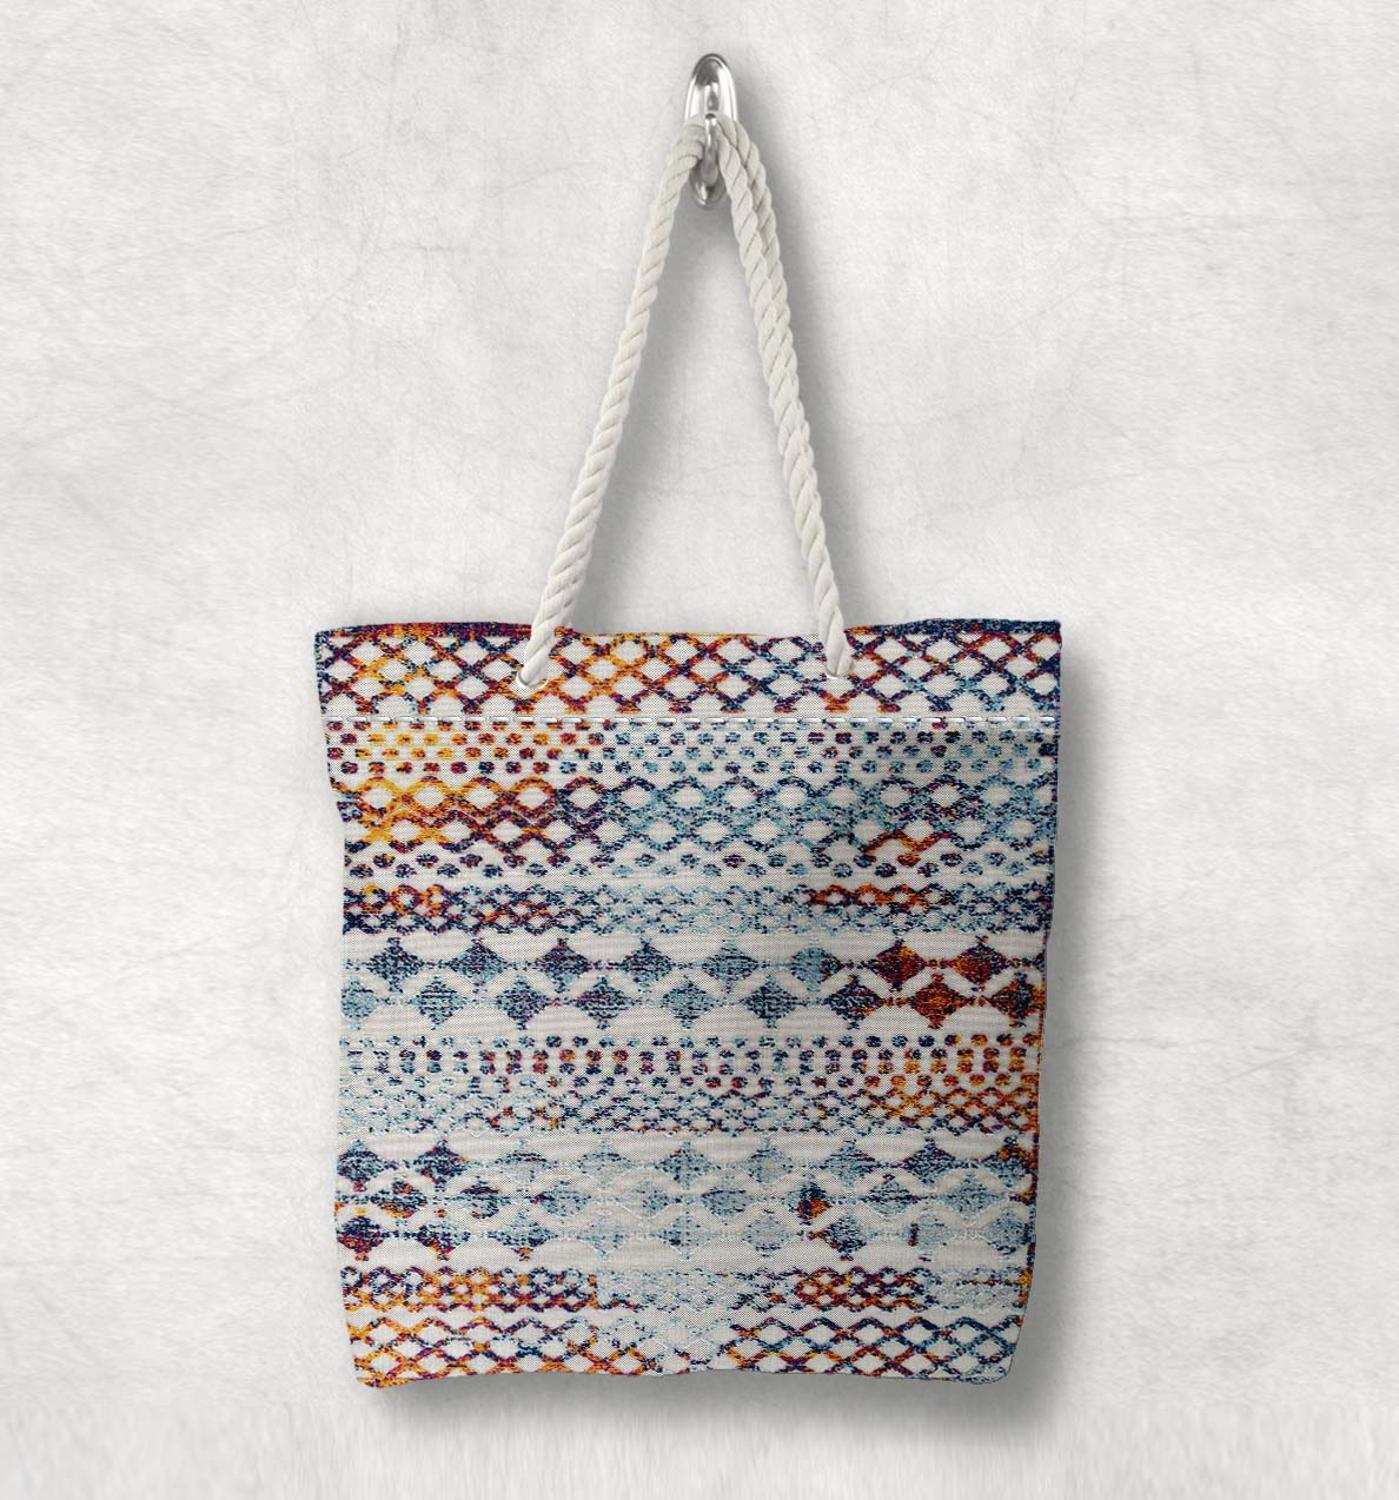 Else Colored Geometric Turkish Kilim Design Fashion White Rope Handle Canvas Bag Cotton Canvas Zippered Tote Bag Shoulder Bag